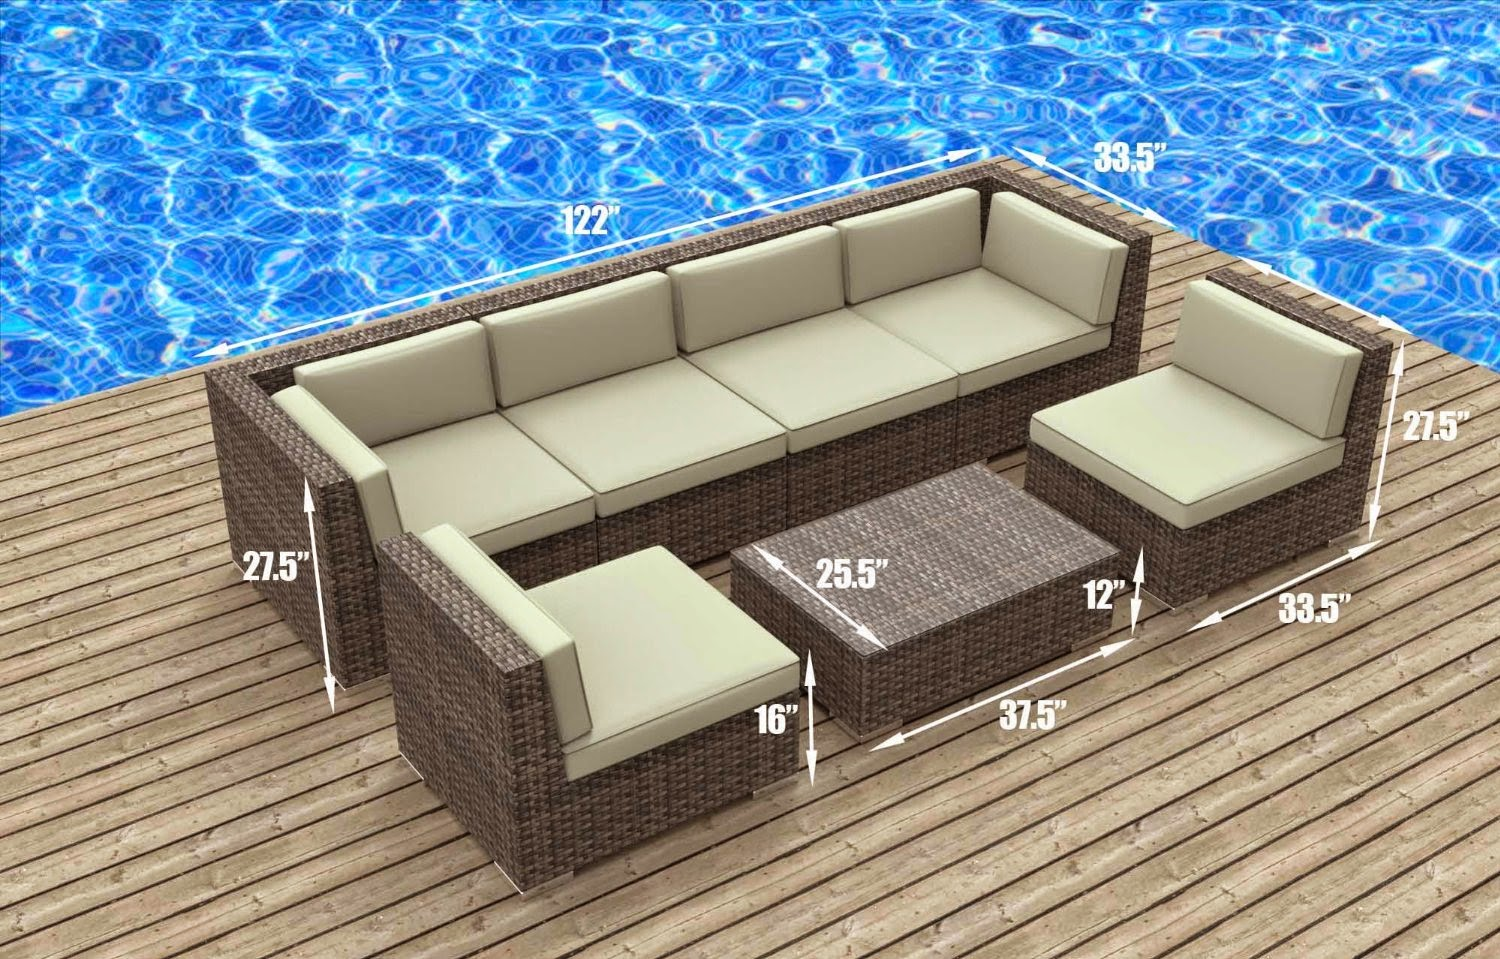 Urban furnishing modern outdoor backyard wicker rattan for Outdoor sectional sofa dimensions